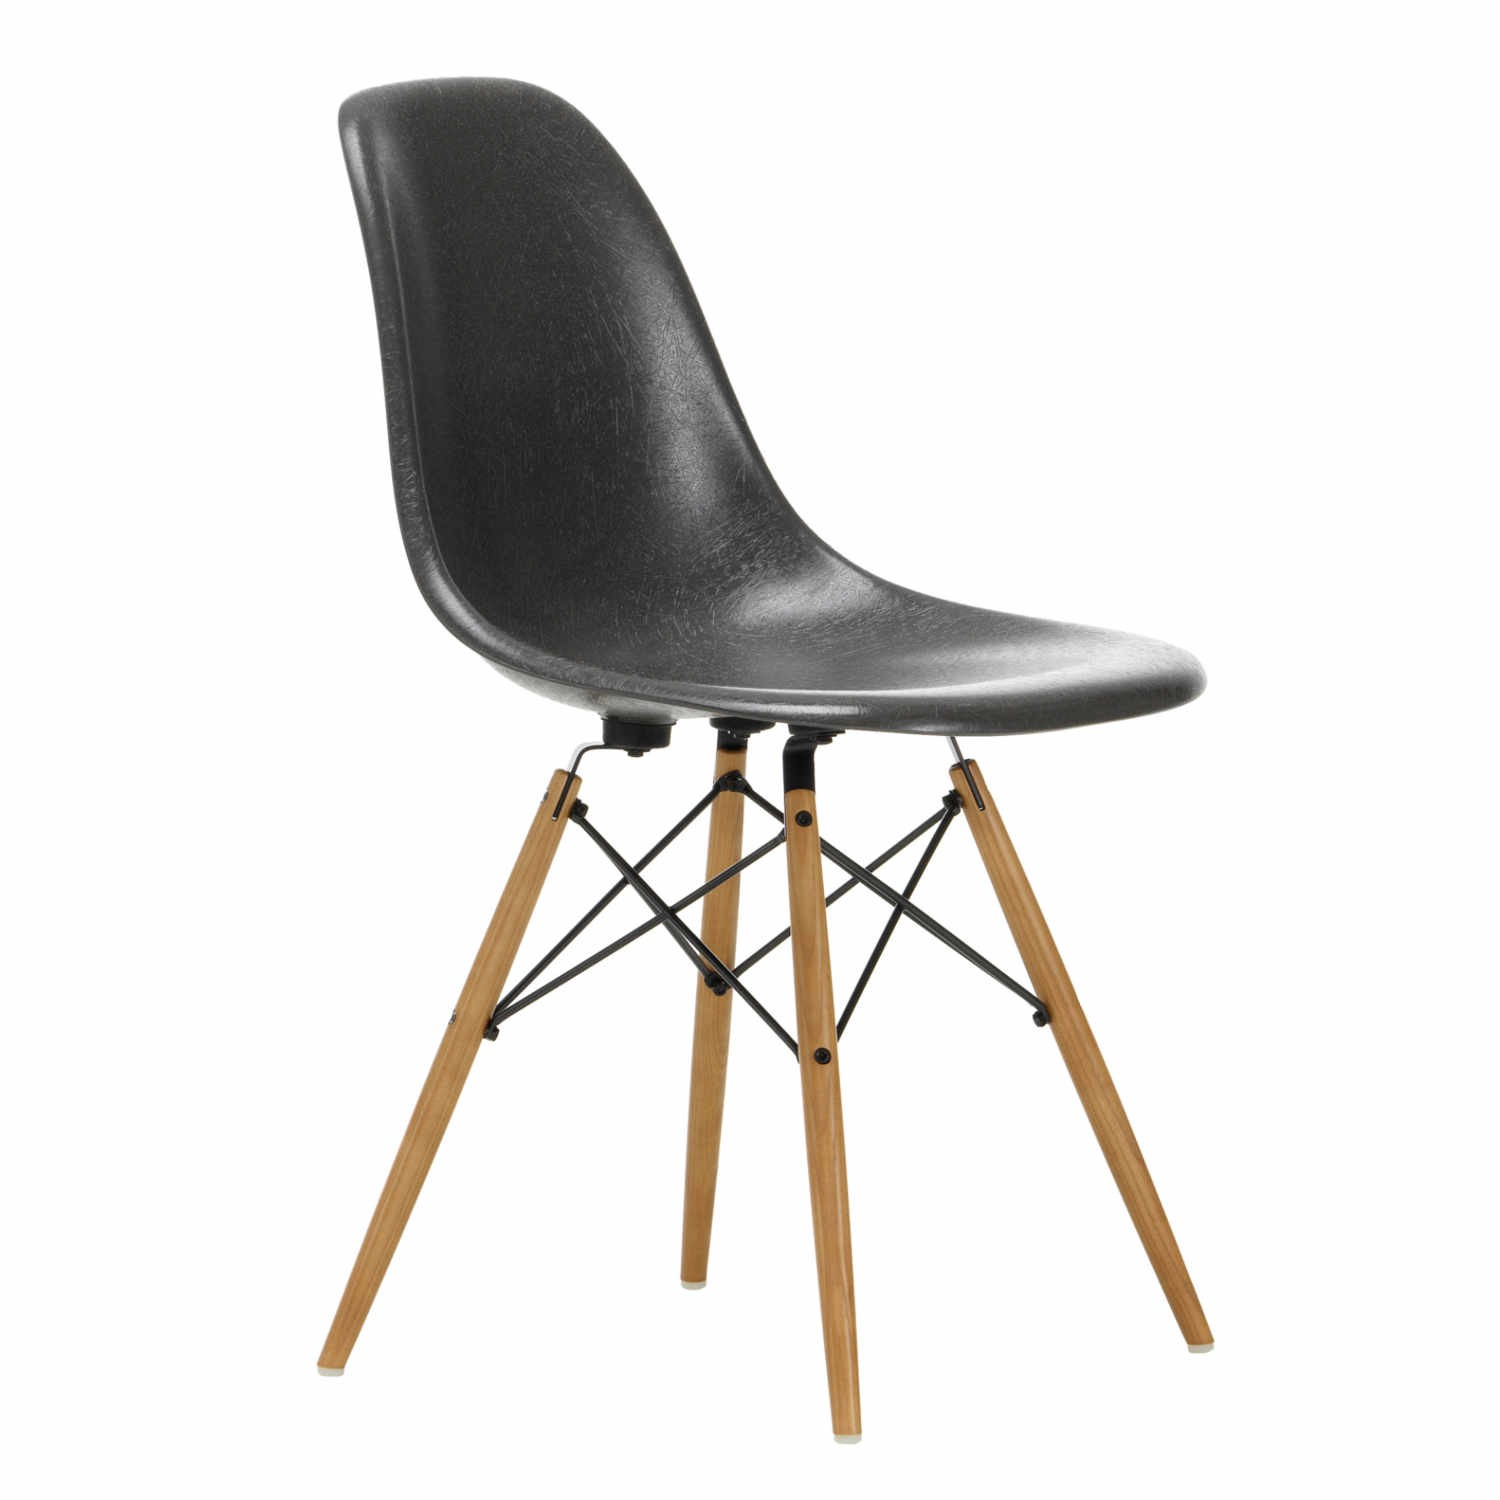 Vitra Eames Fiberglass Side Chair DSW Stuhl bruno wickart